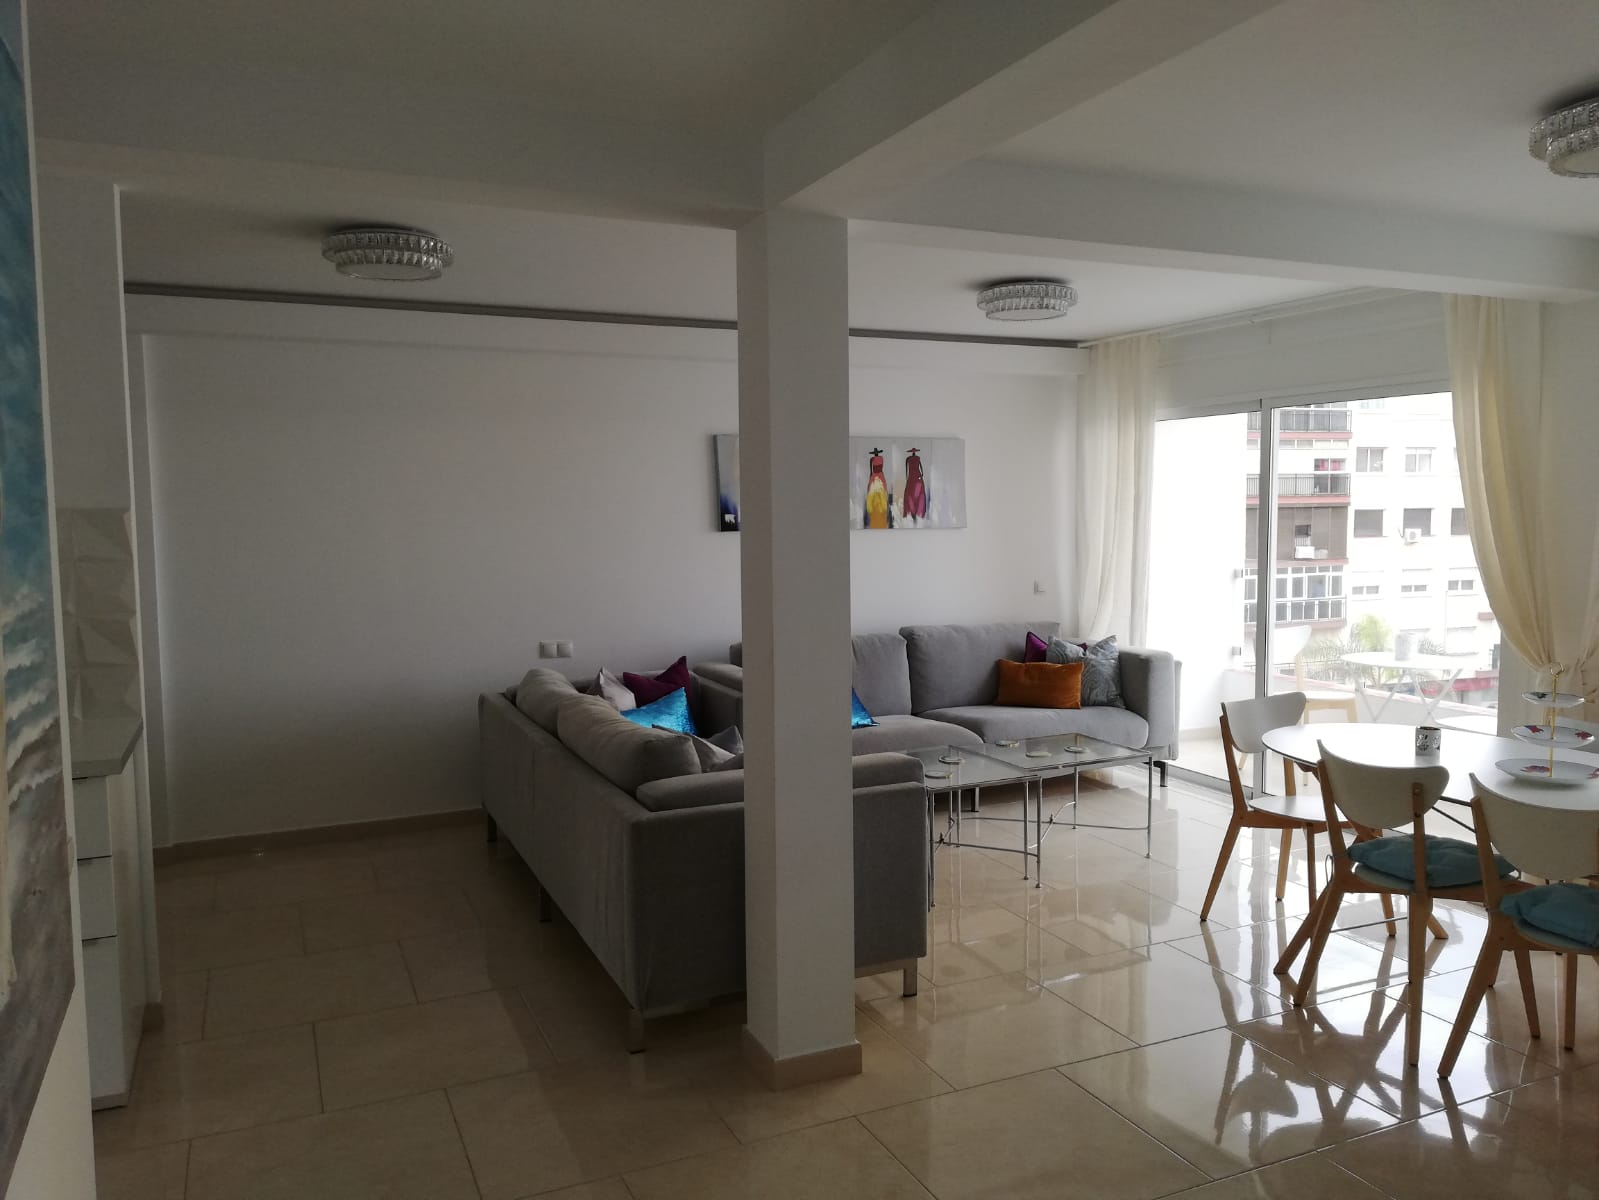 2 bedroom apartment for rent in Estepona near the beach - mibgroup.es